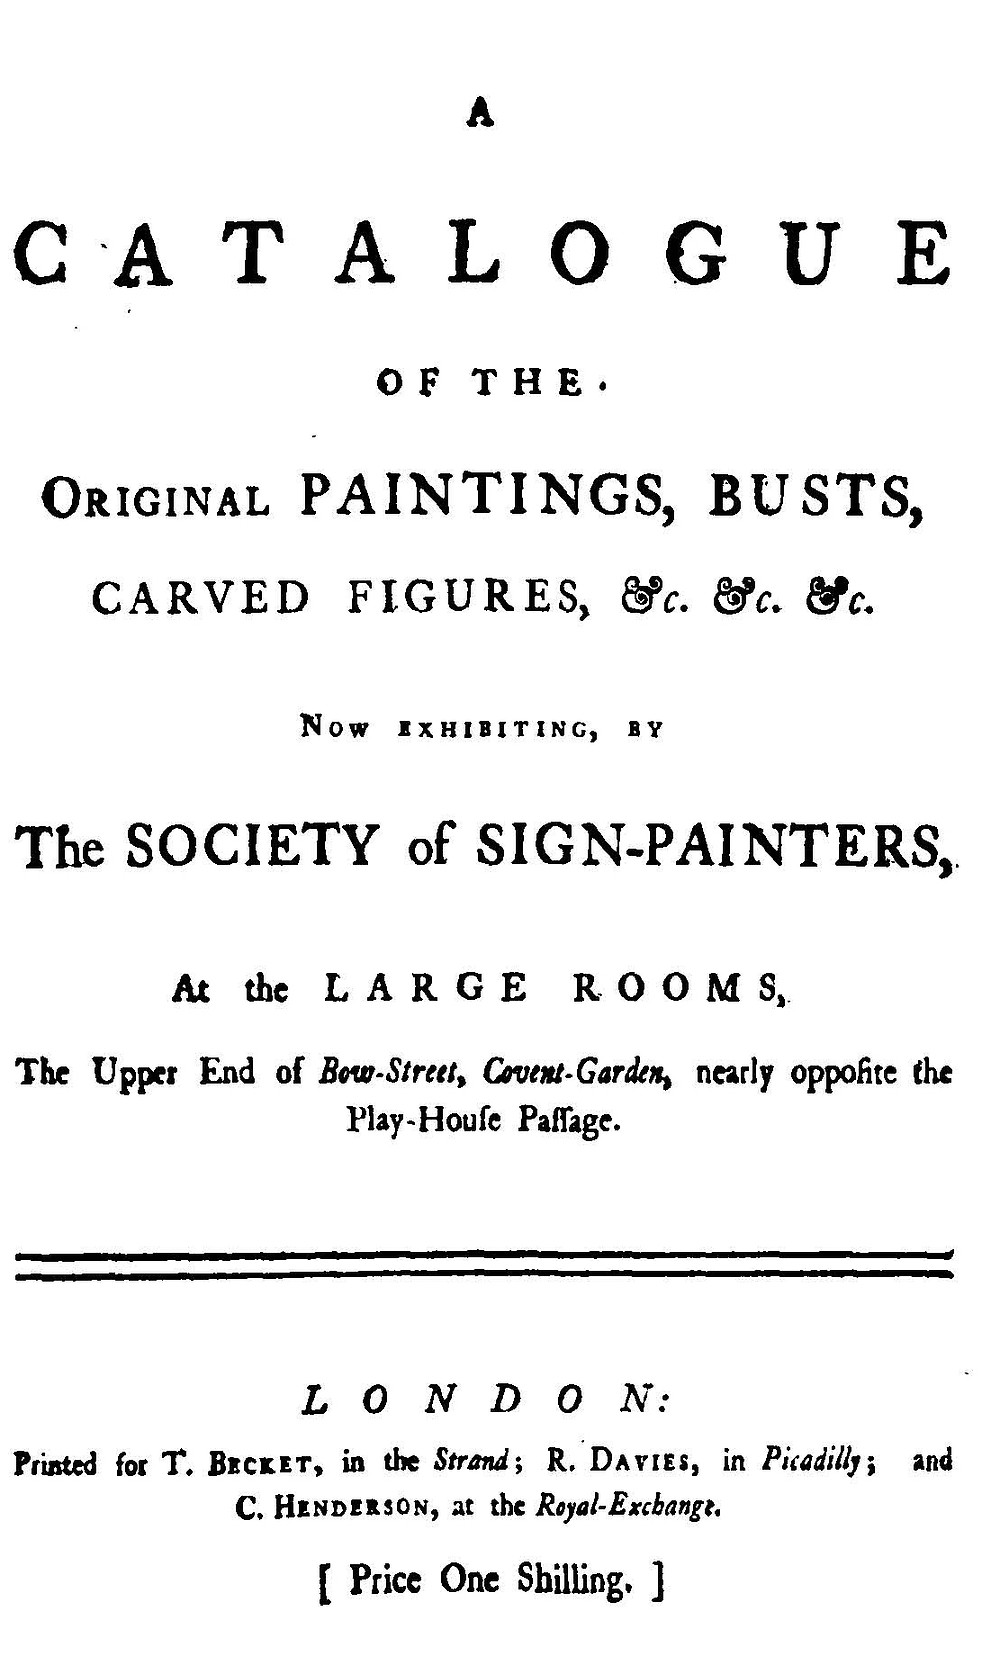 A catalogue of the original painting busts